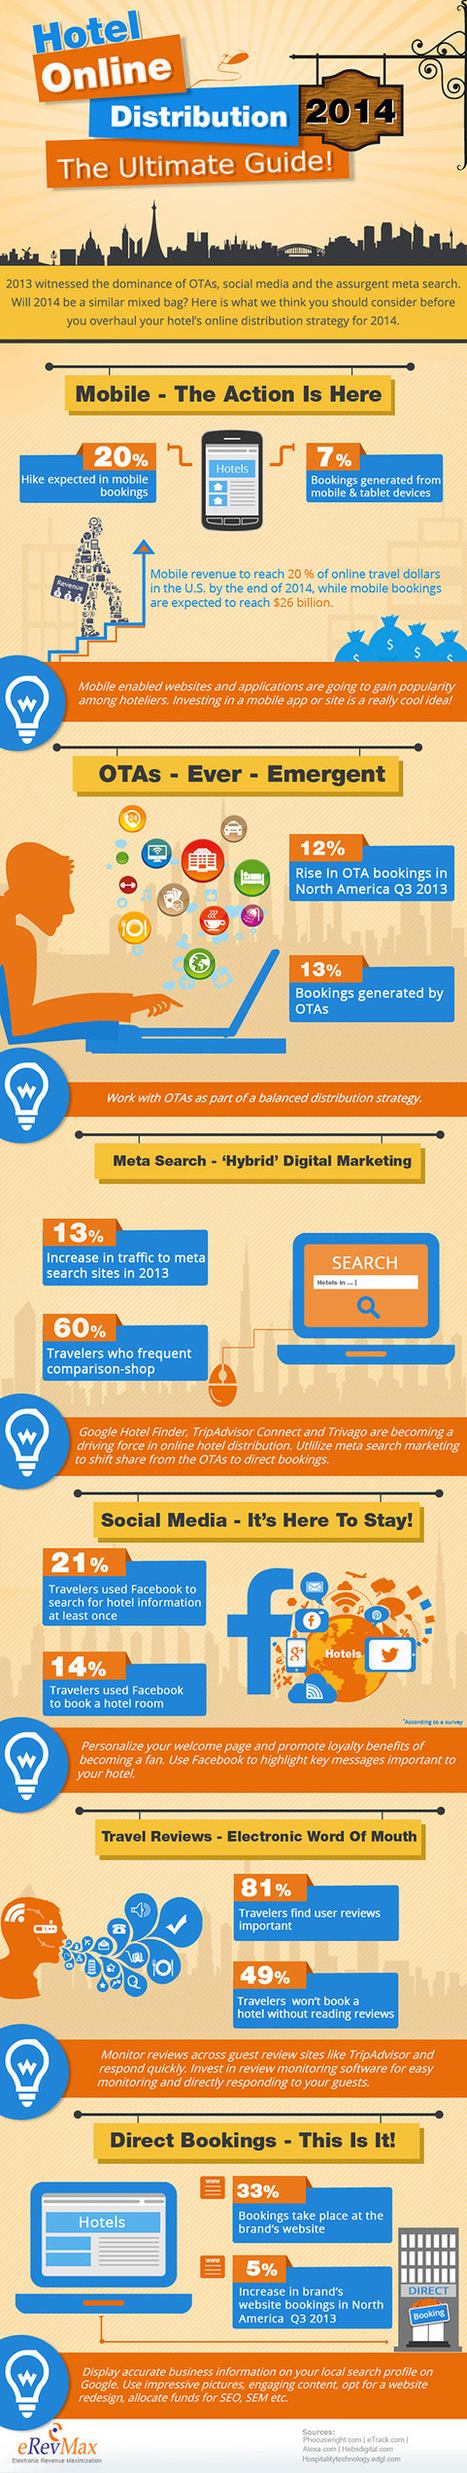 Infographic Hotel Online Distribution 2014   Marketing Technology   Scoop.it